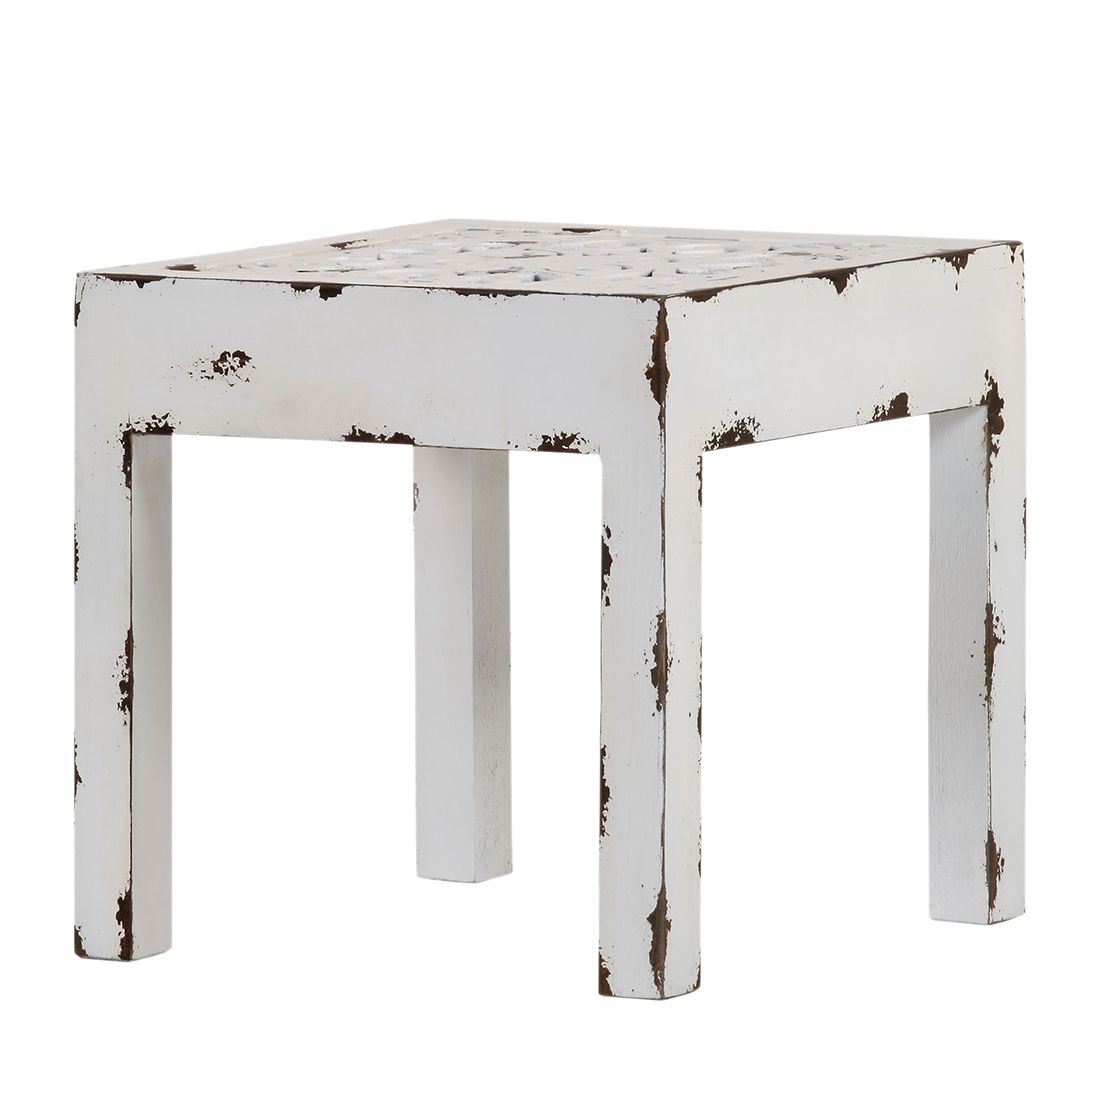 Table basse Chapalasee - Pin massif blanc - Teinté et verni, Red Living